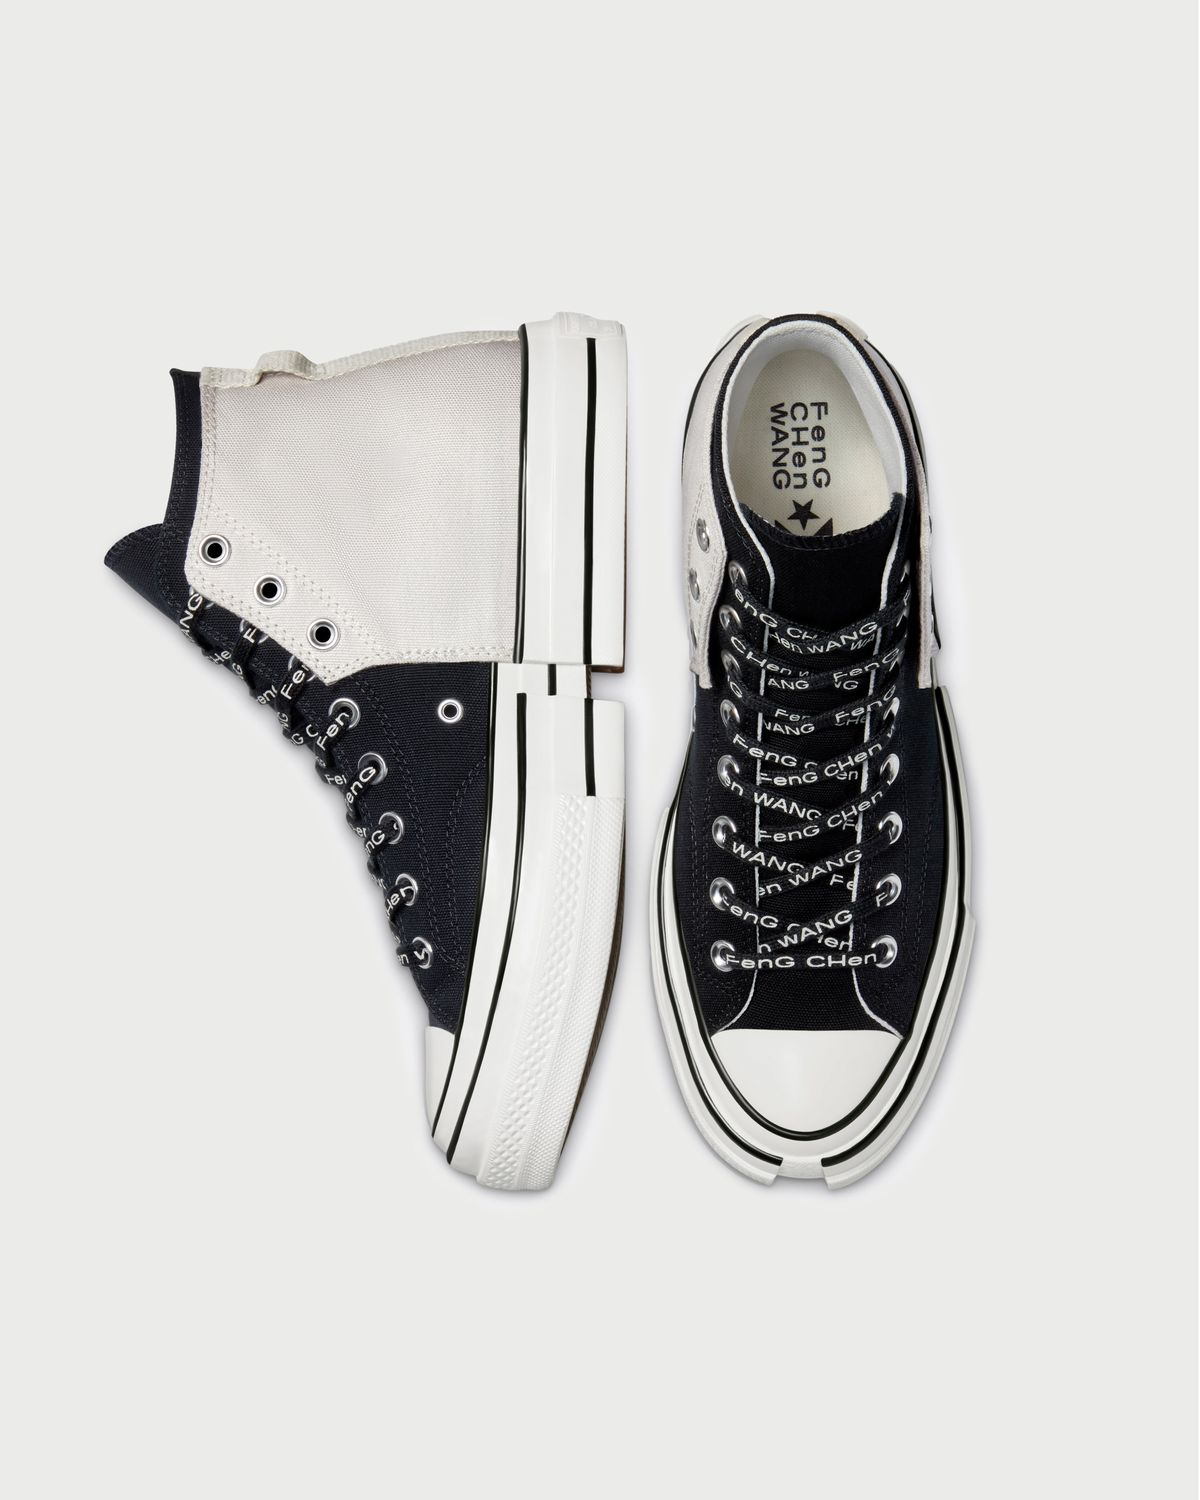 Converse x Feng Chen Wang 2-in-1 Chuck 70 High - Natural Ivory/Black - Image 4